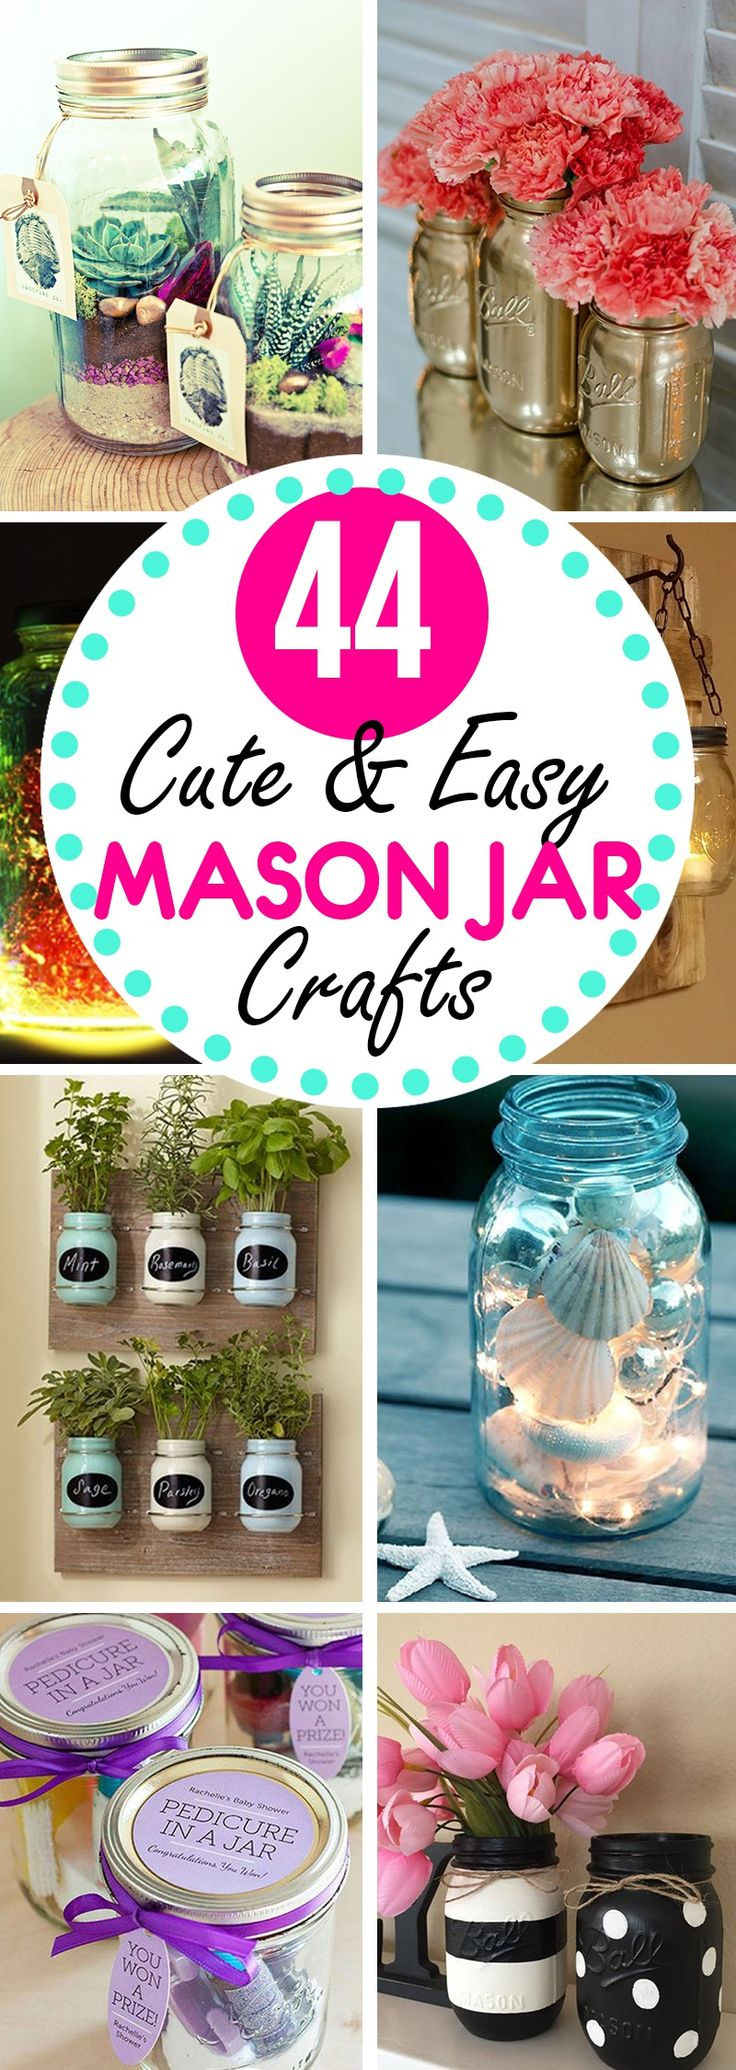 When it comes to craftiness, it's hard to beat the utility of a mason jar. These simple little containers can be used as everything from piggy banks to candle holders, and the more elaborate crafters out there have even built things like mason jar chandeliers. 44 Ways to Re-Purpose Your Old M...